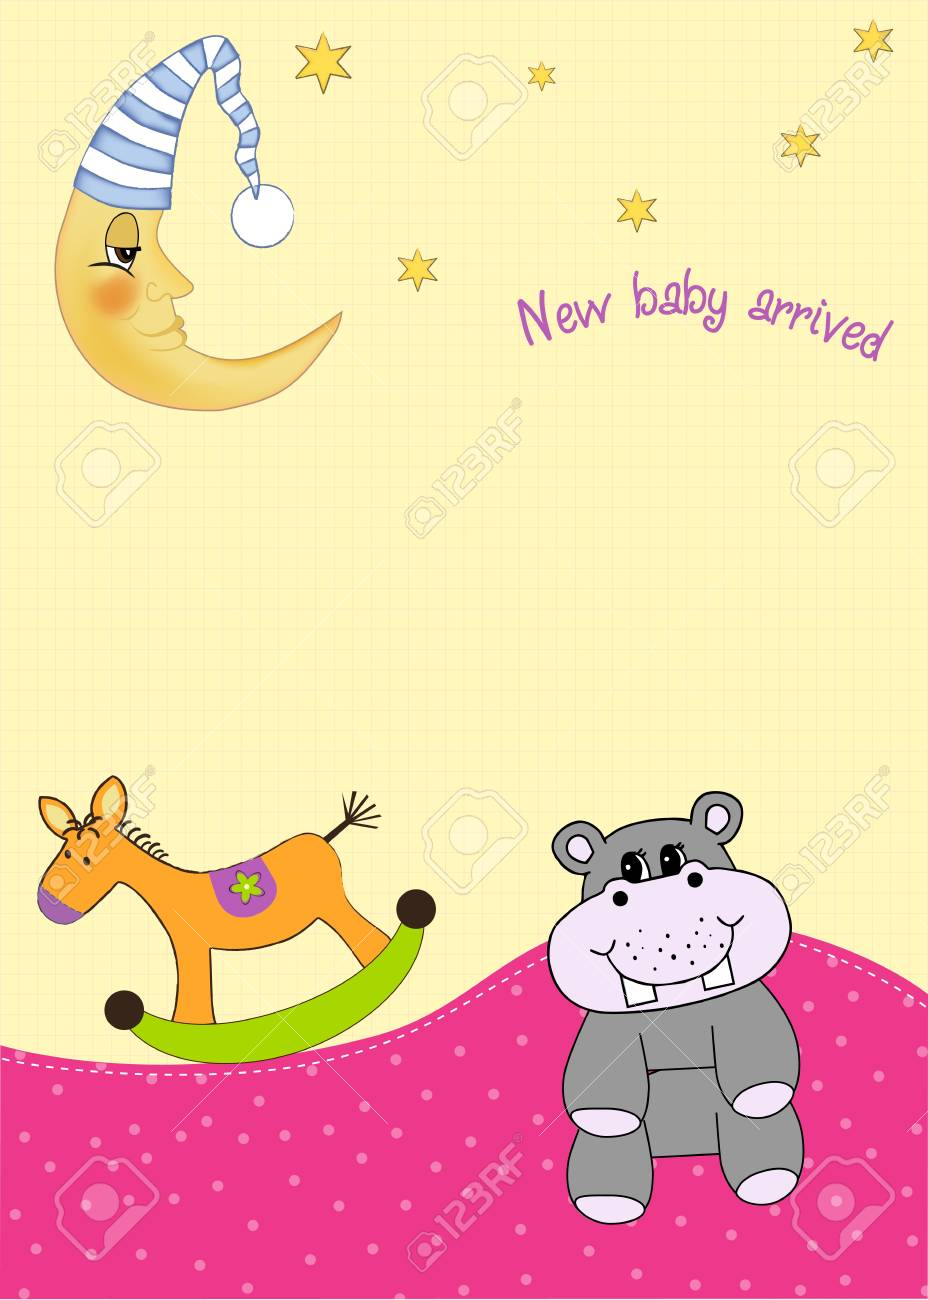 welcome, baby announcement card Stock Vector - 9806685